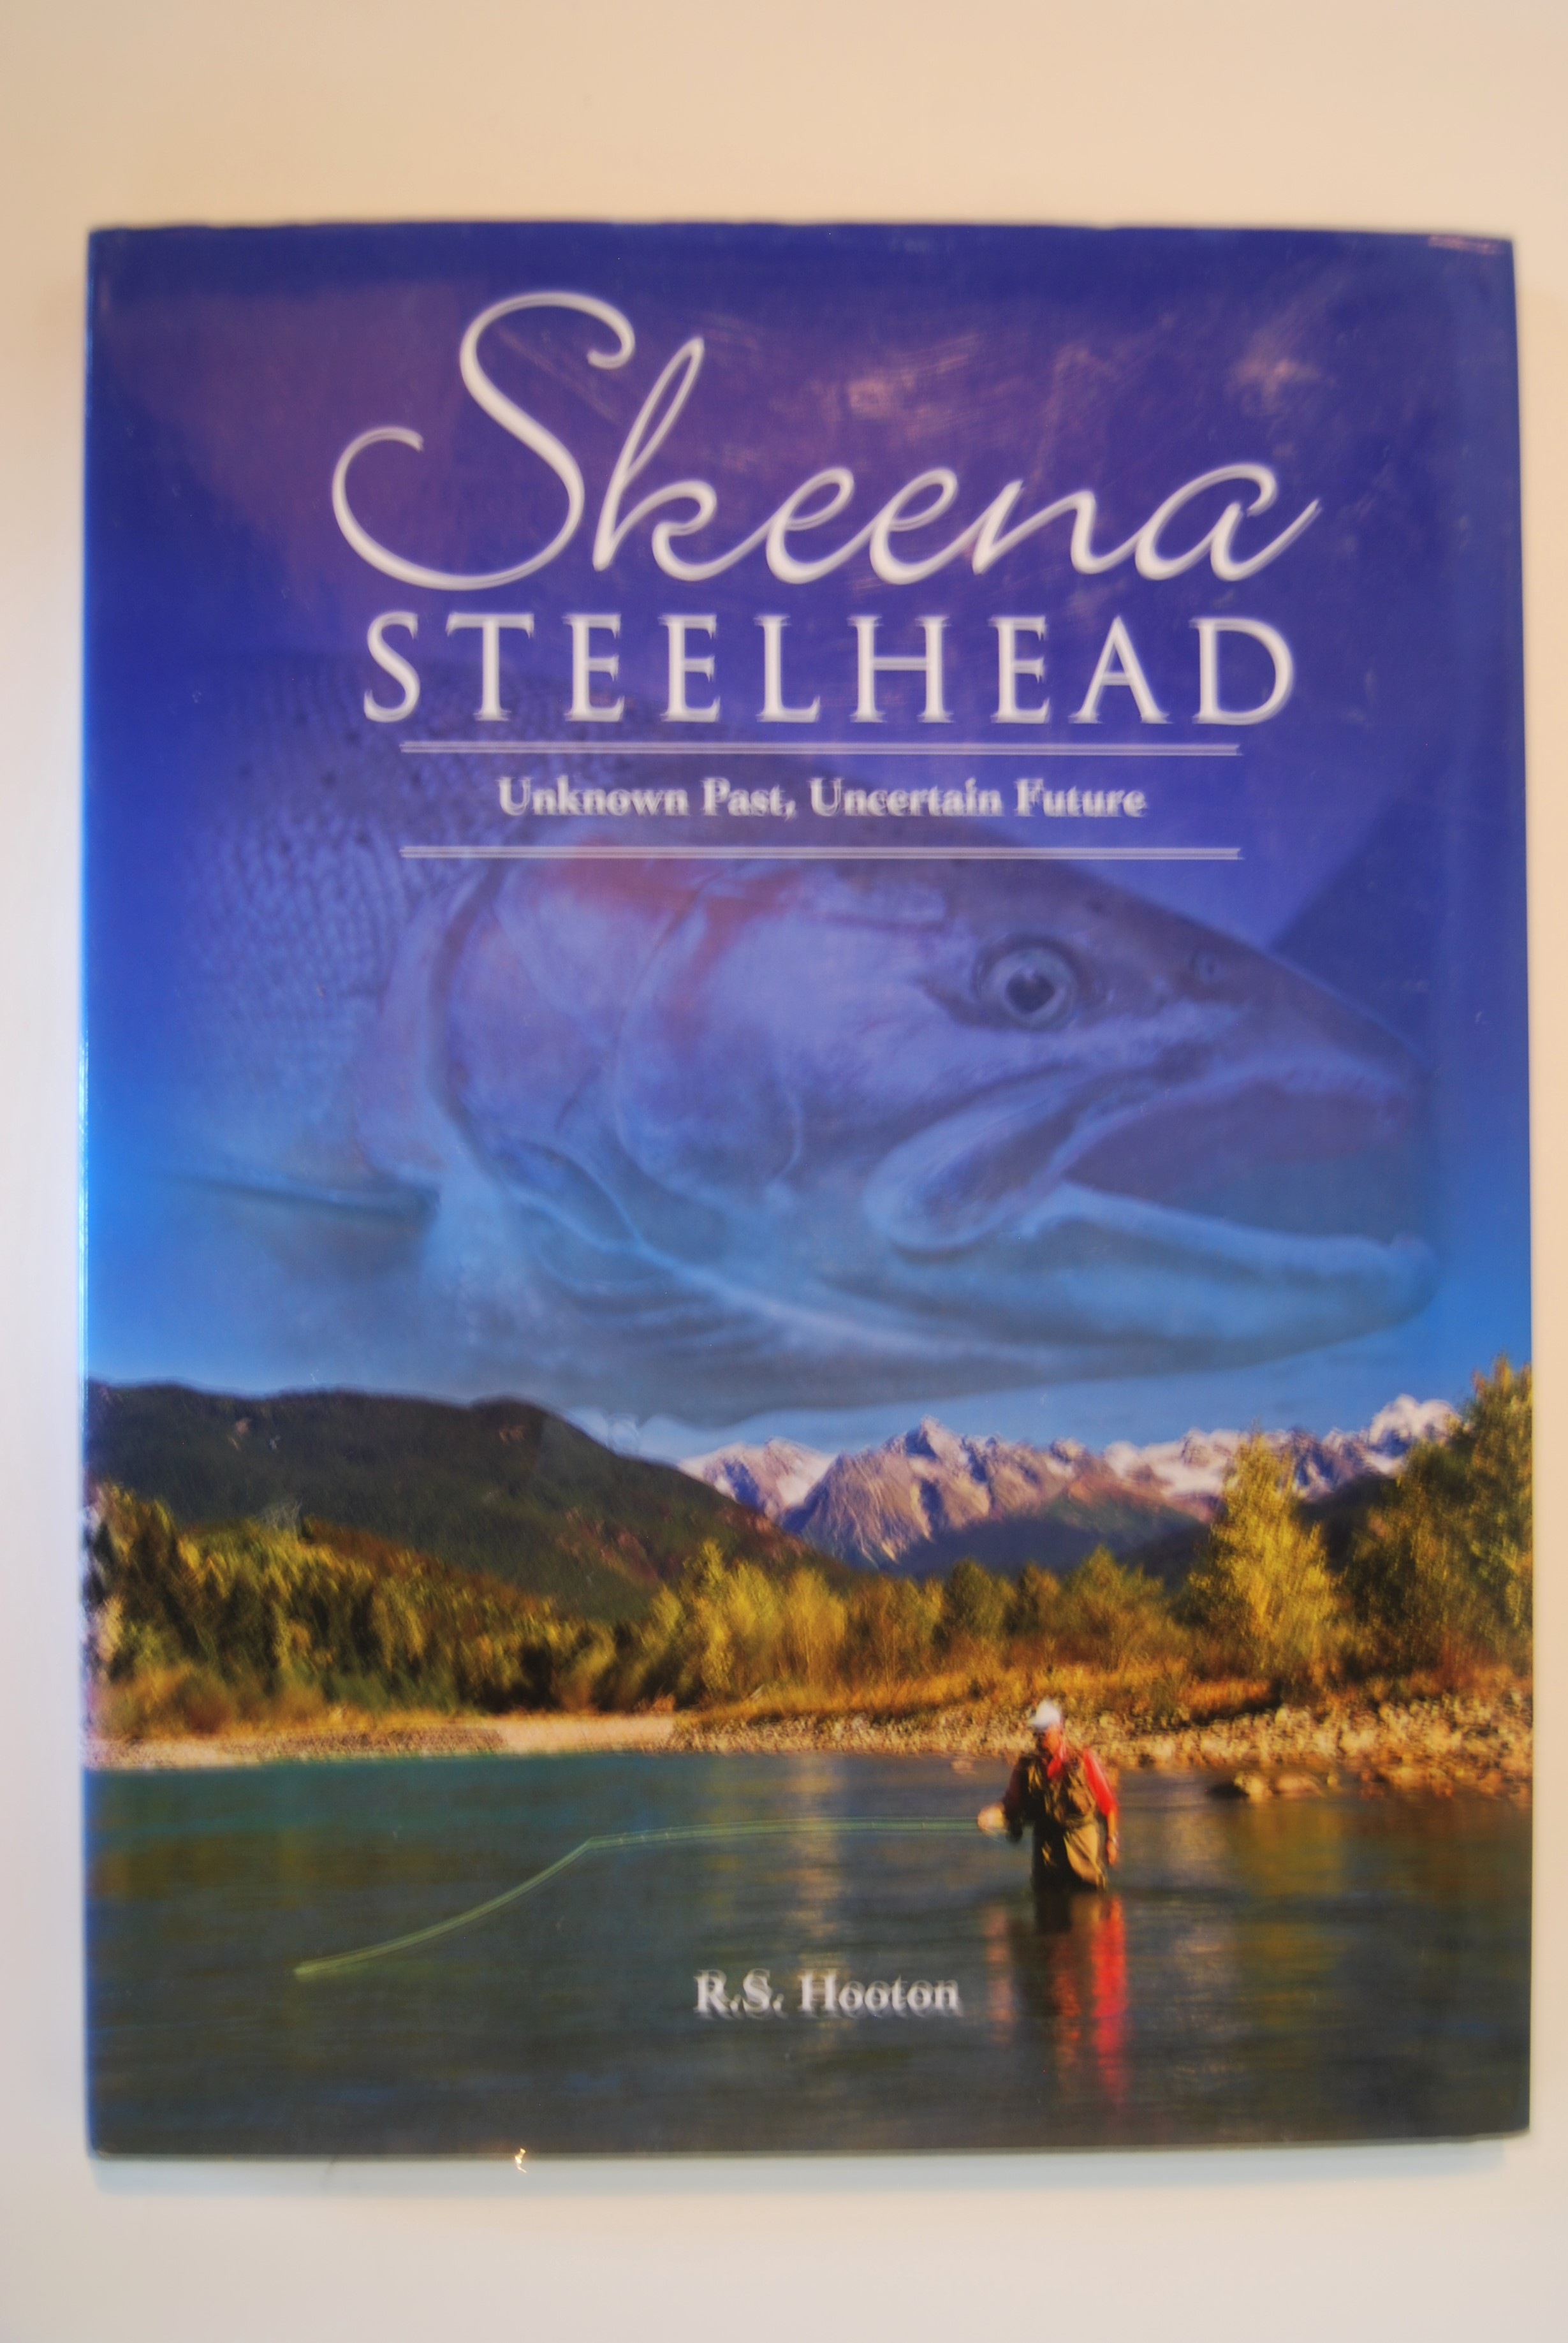 Image for SKEENA STEELHEAD. Unknown Past, Uncertain Future. 4to illus. Portland: Ecotrust & Frank Amato Publications, Inc. 157 p. 2011 1st Ed.